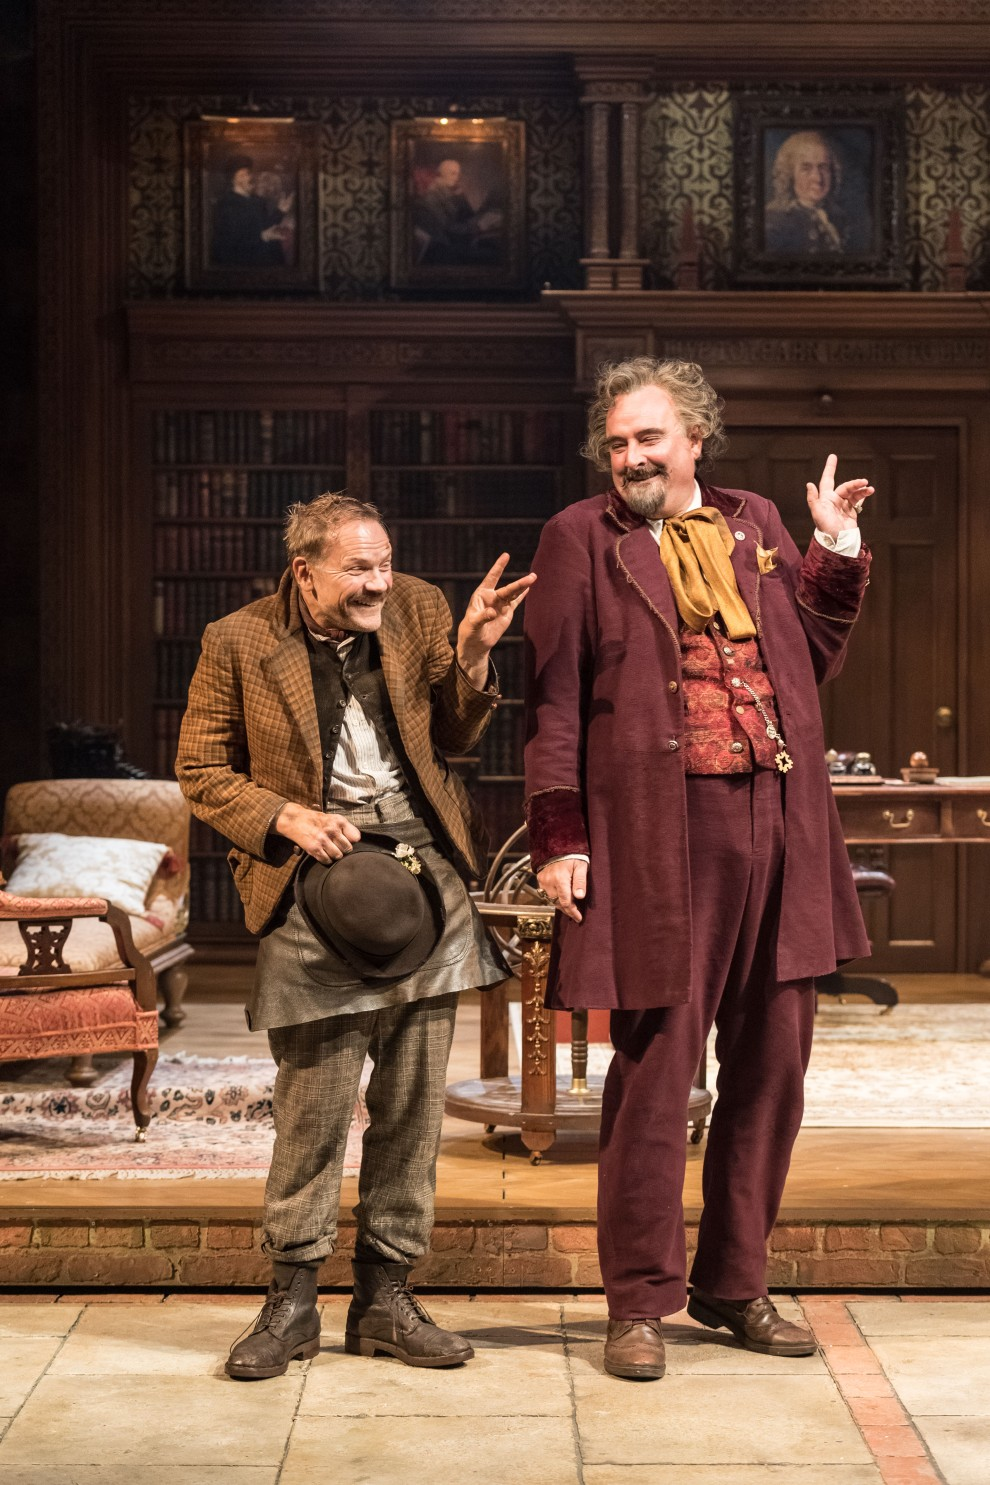 nick-haverson-and-john-hodgkinson-in-rsc-chichester-festival-theatres-production-of-loves-labours-lost-photo-by-manuel-harlan